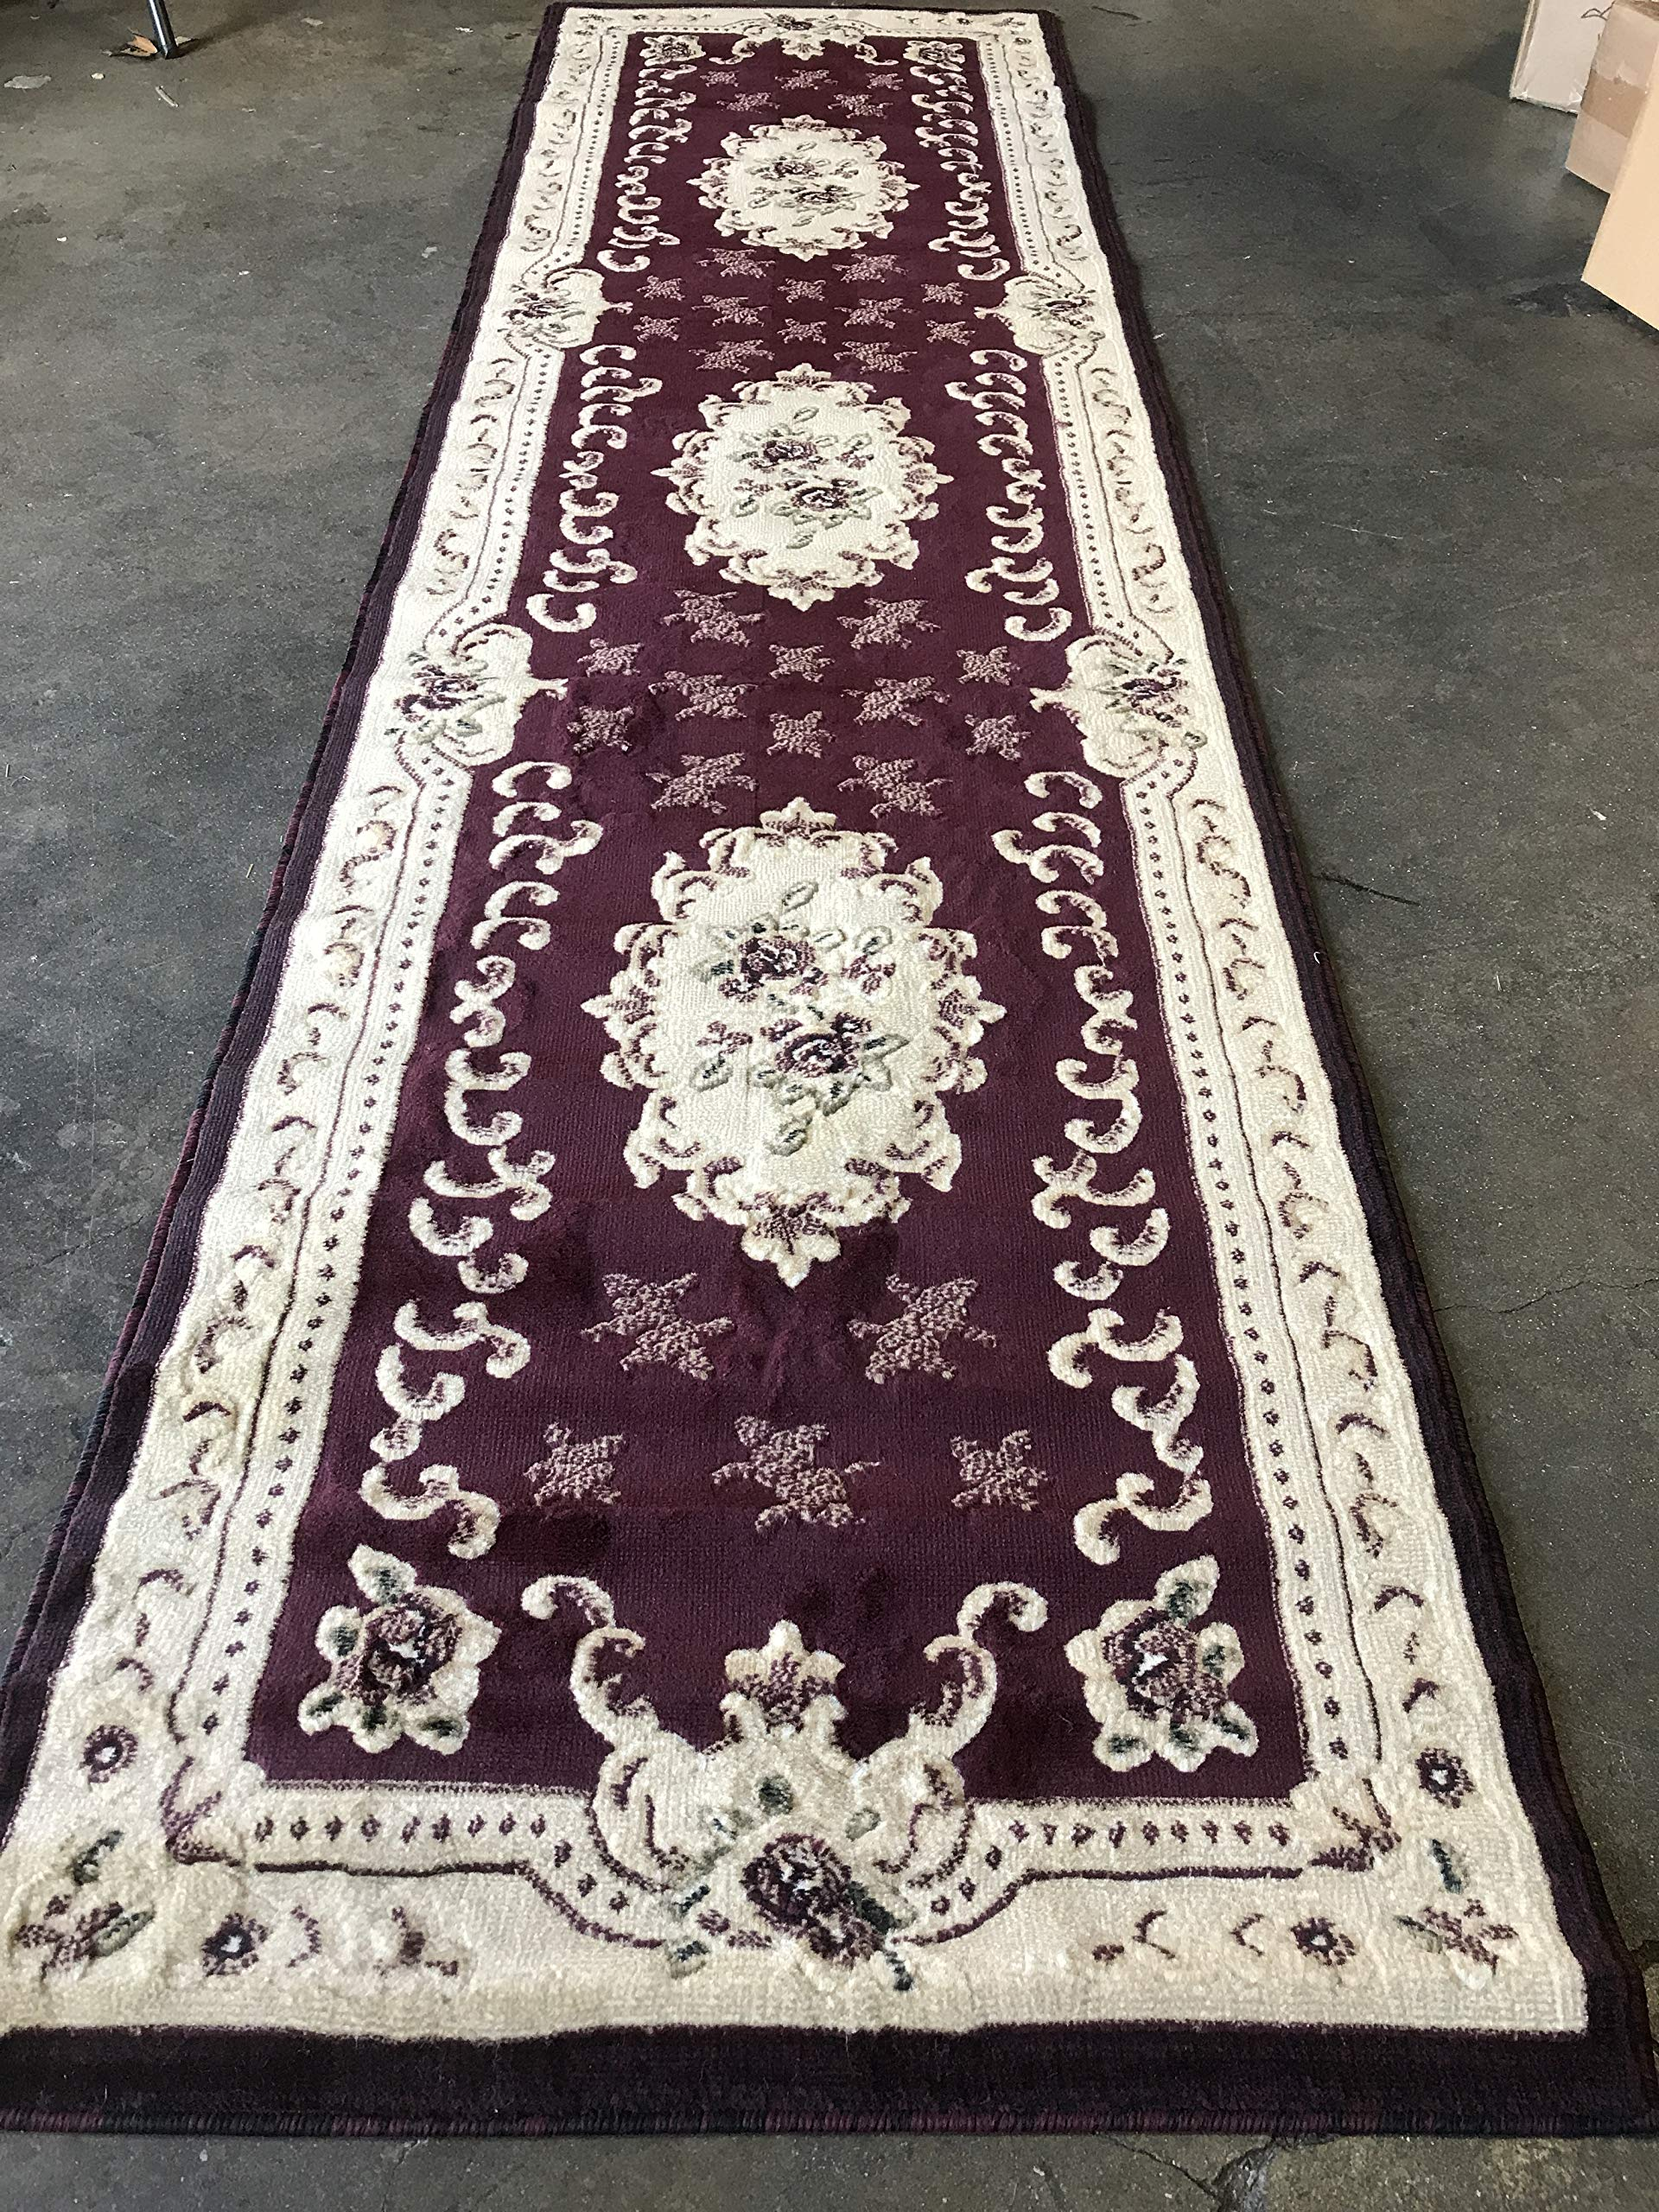 emirates Traditional Long Aubusson Persian Floral Runner Rug Burgundy Green Beige Ivory Design 507 (31 Inch X 14 Feet 5 Inch) - Traditional Long Aubusson Persian Floral Runner Rug Burgundy Green Beige Ivory Design 507 (31 Inch X 14 Feet 5 Inch) Quality textured Aubusson design with Burgundy ,green,beige, and ivory. Easy to clean,(stain resistant and soil proof) very durable. - runner-rugs, entryway-furniture-decor, entryway-laundry-room - A1STV BEcpL -